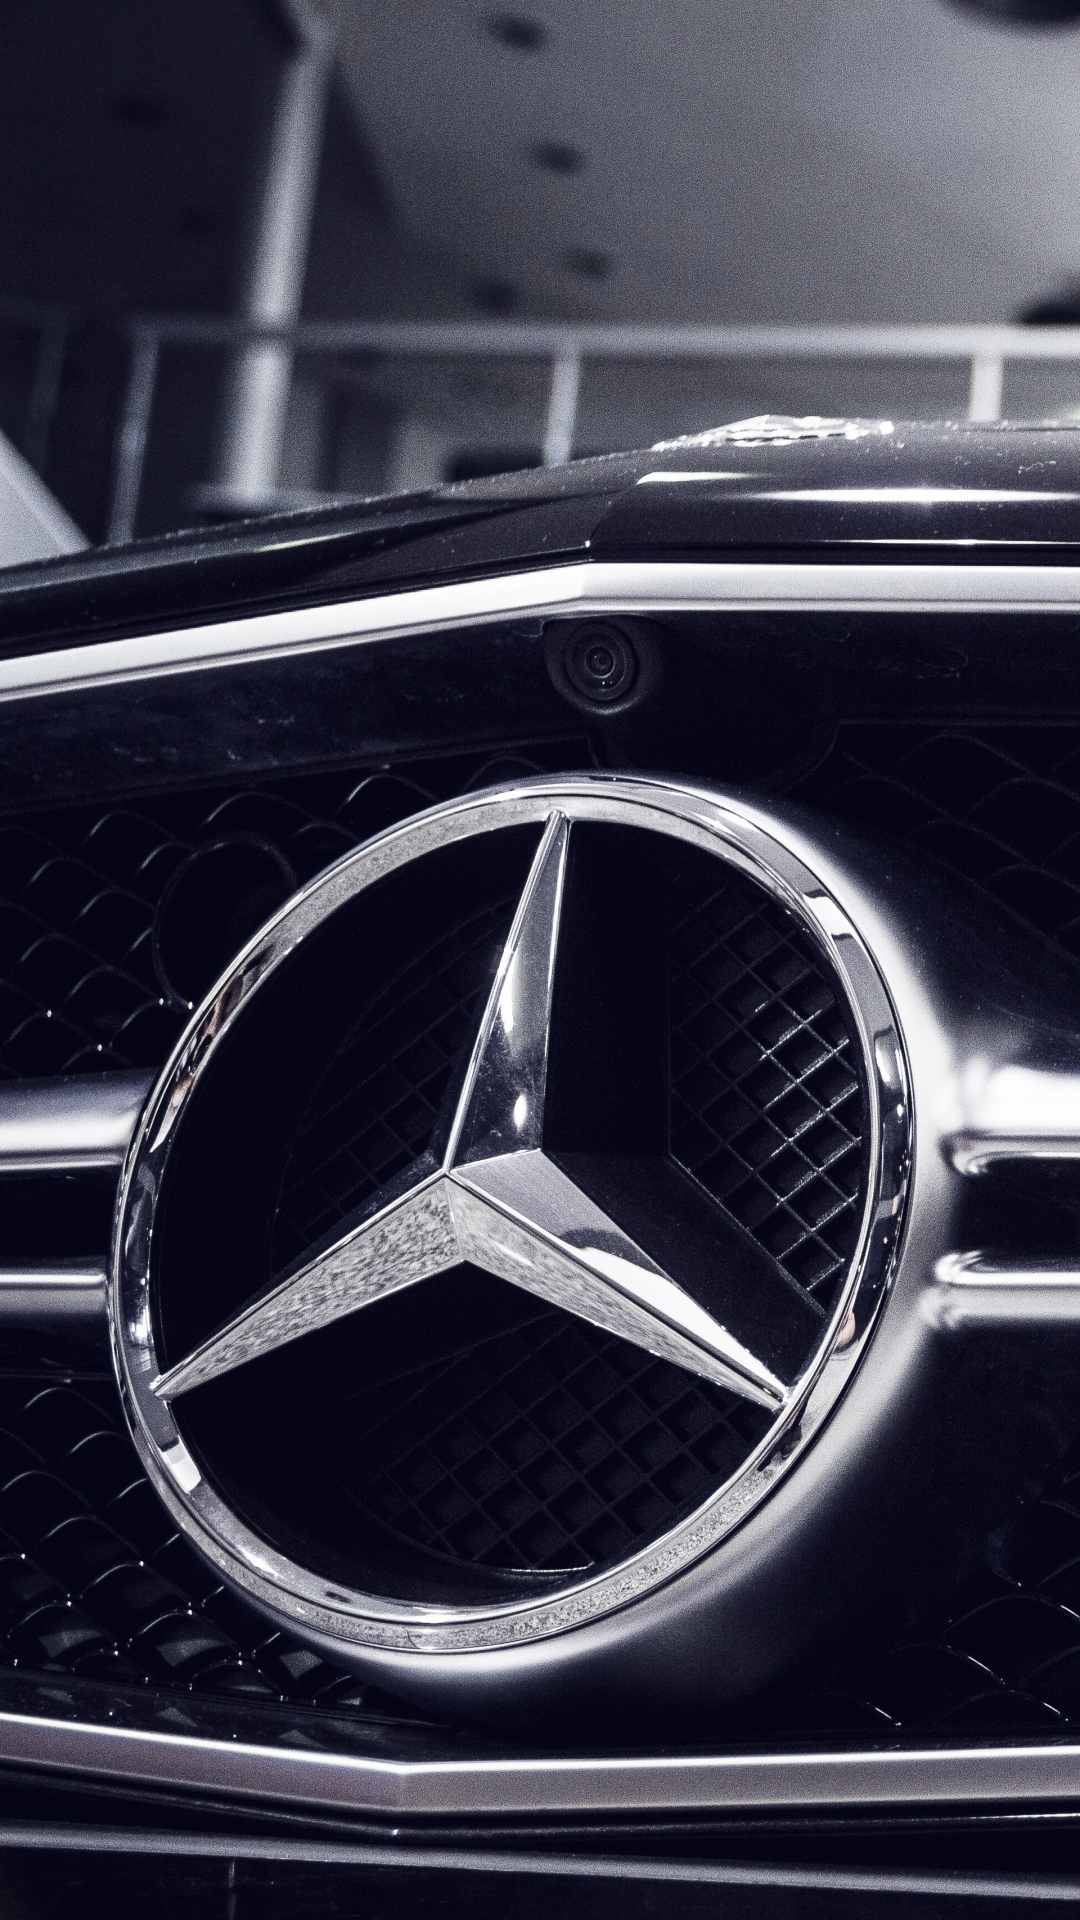 Mercedes benz wallpaper for iphone 6 wallpaper images for Www mercedes benz mobile com iphone